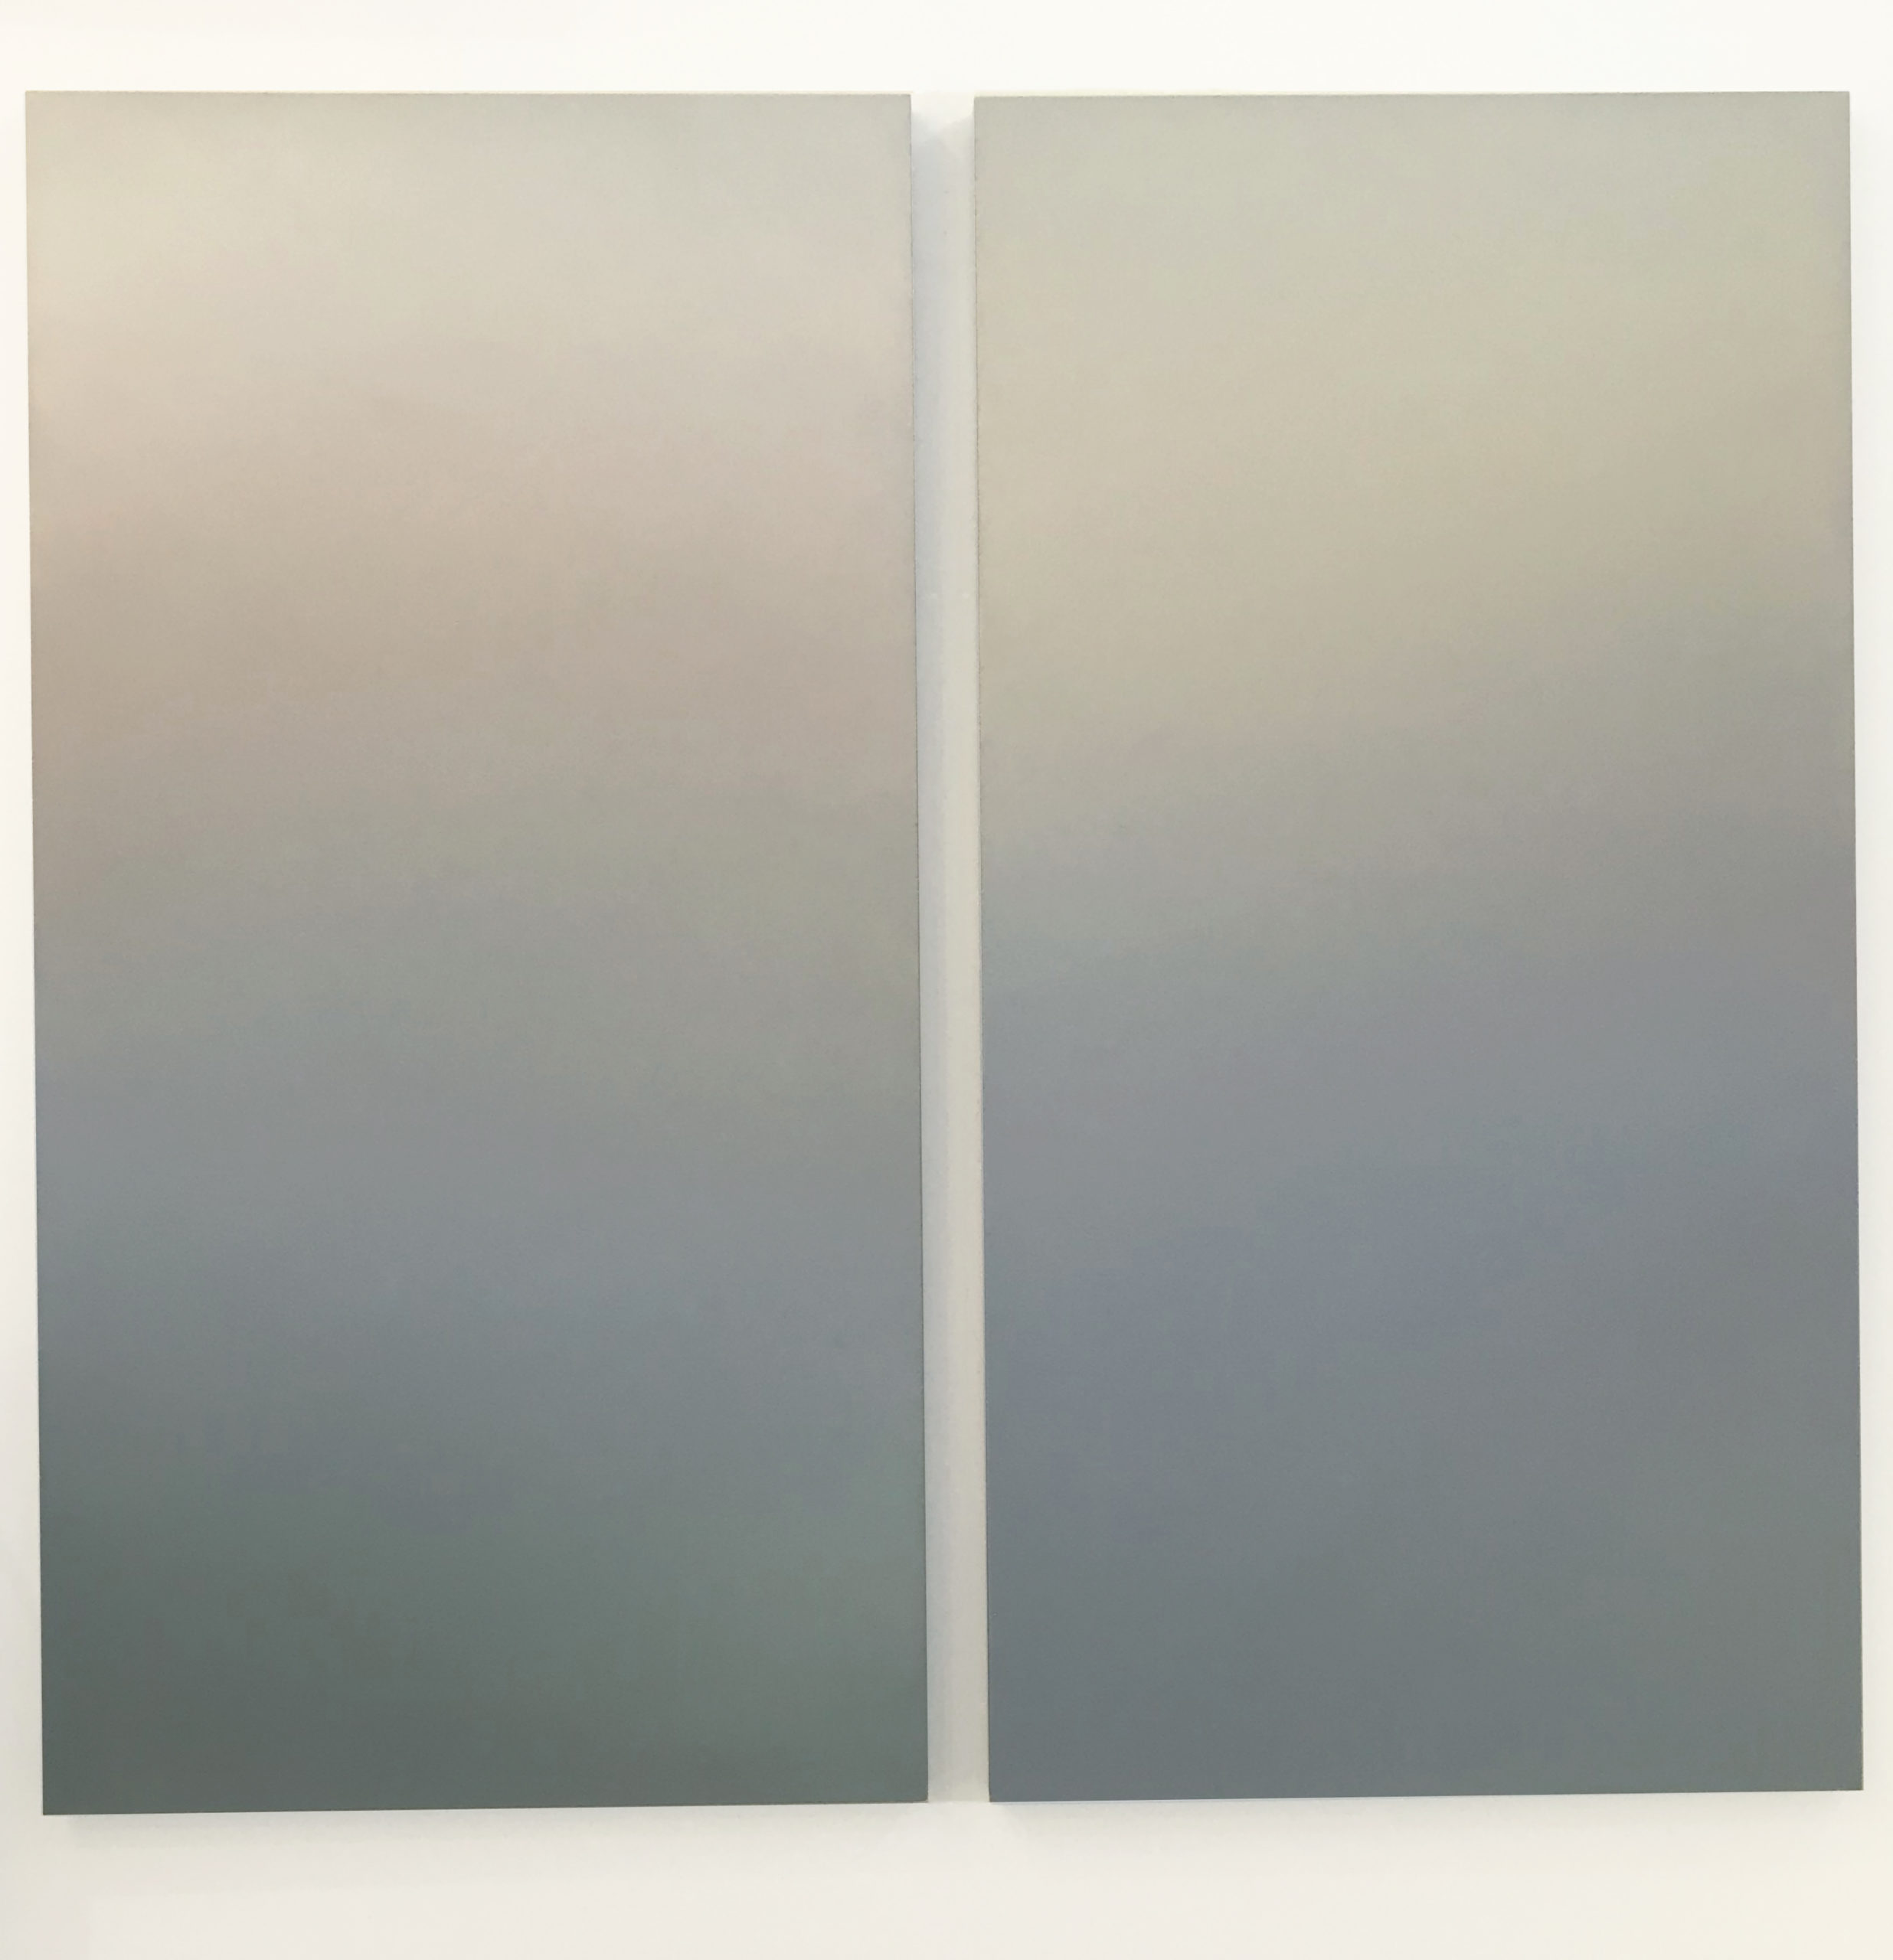 """Mary Boochever """"Inner Landscape Gamma,"""" 2021. Pigments and acrylic on canvas, diptych, 72"""" x 76 ¾"""" overall."""